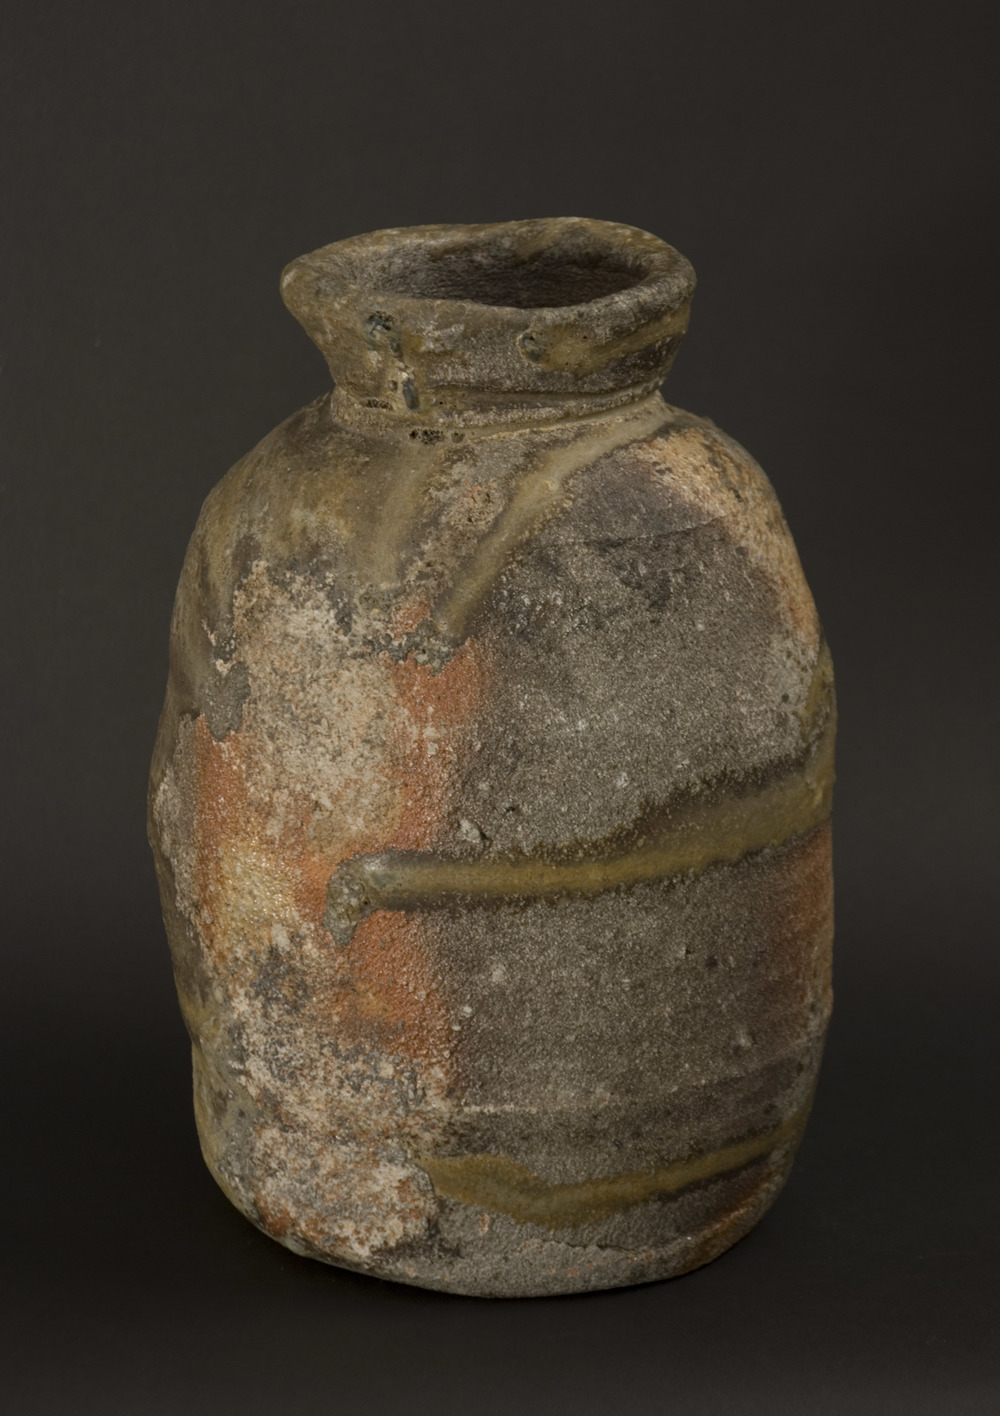 Owen Rye    Bag Form   , 2008 Woodfired stoneware 10 x 6 x 6 inches  /  25.4 x 15.2 x 15.2 cm  /  OWR 2